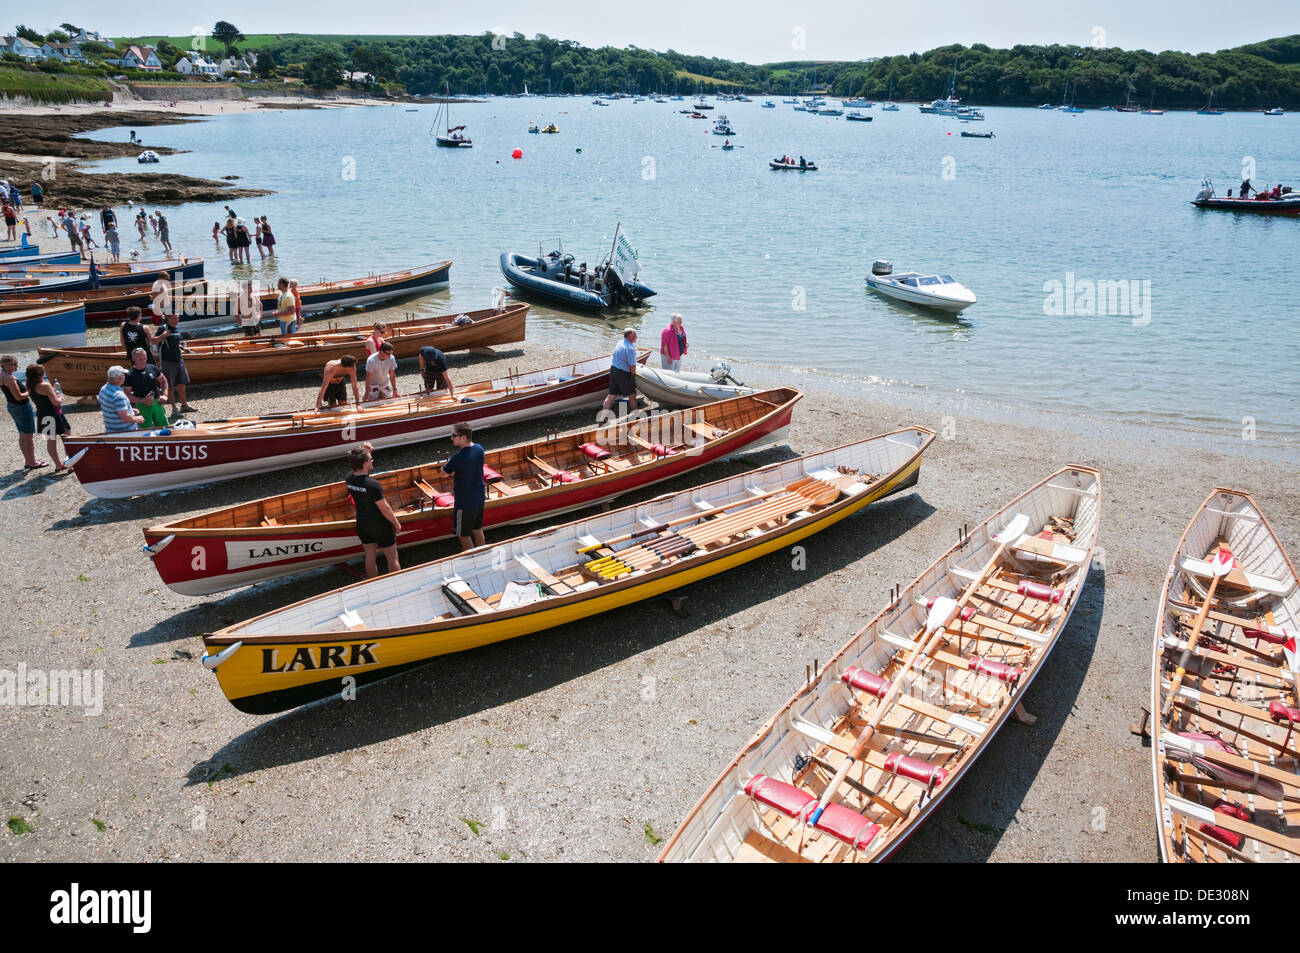 Great Britain, England, Cornwall, St. Mawes, participants preparing for Cornish pilot gig six oared rowing boat - Stock Image